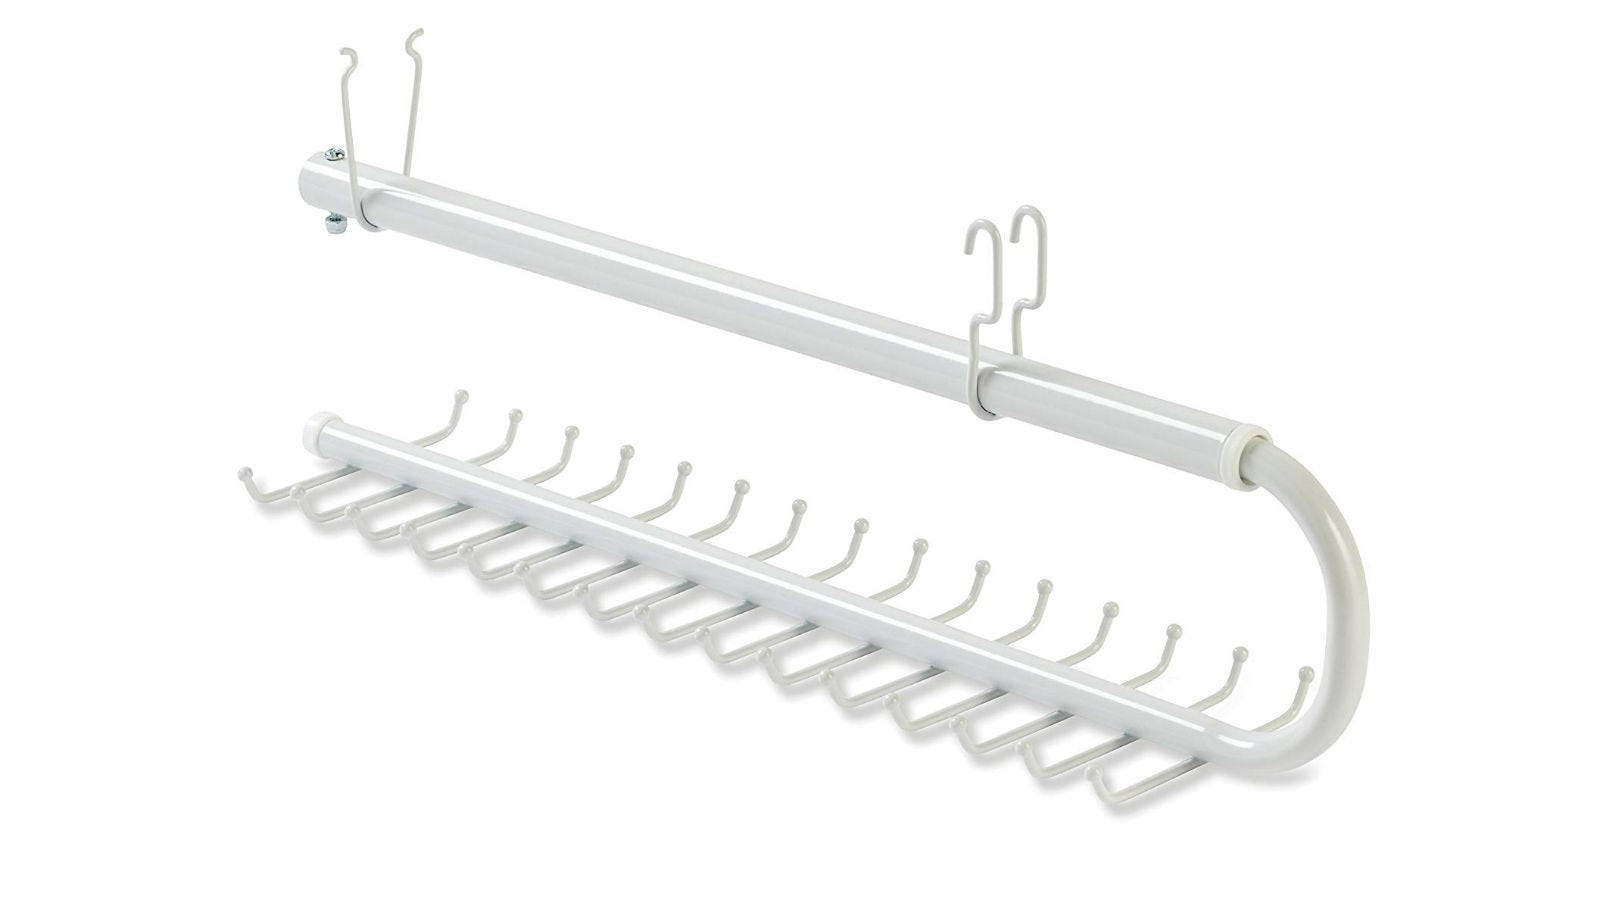 Rubbermaid Fast Track Tie and Belt Holder